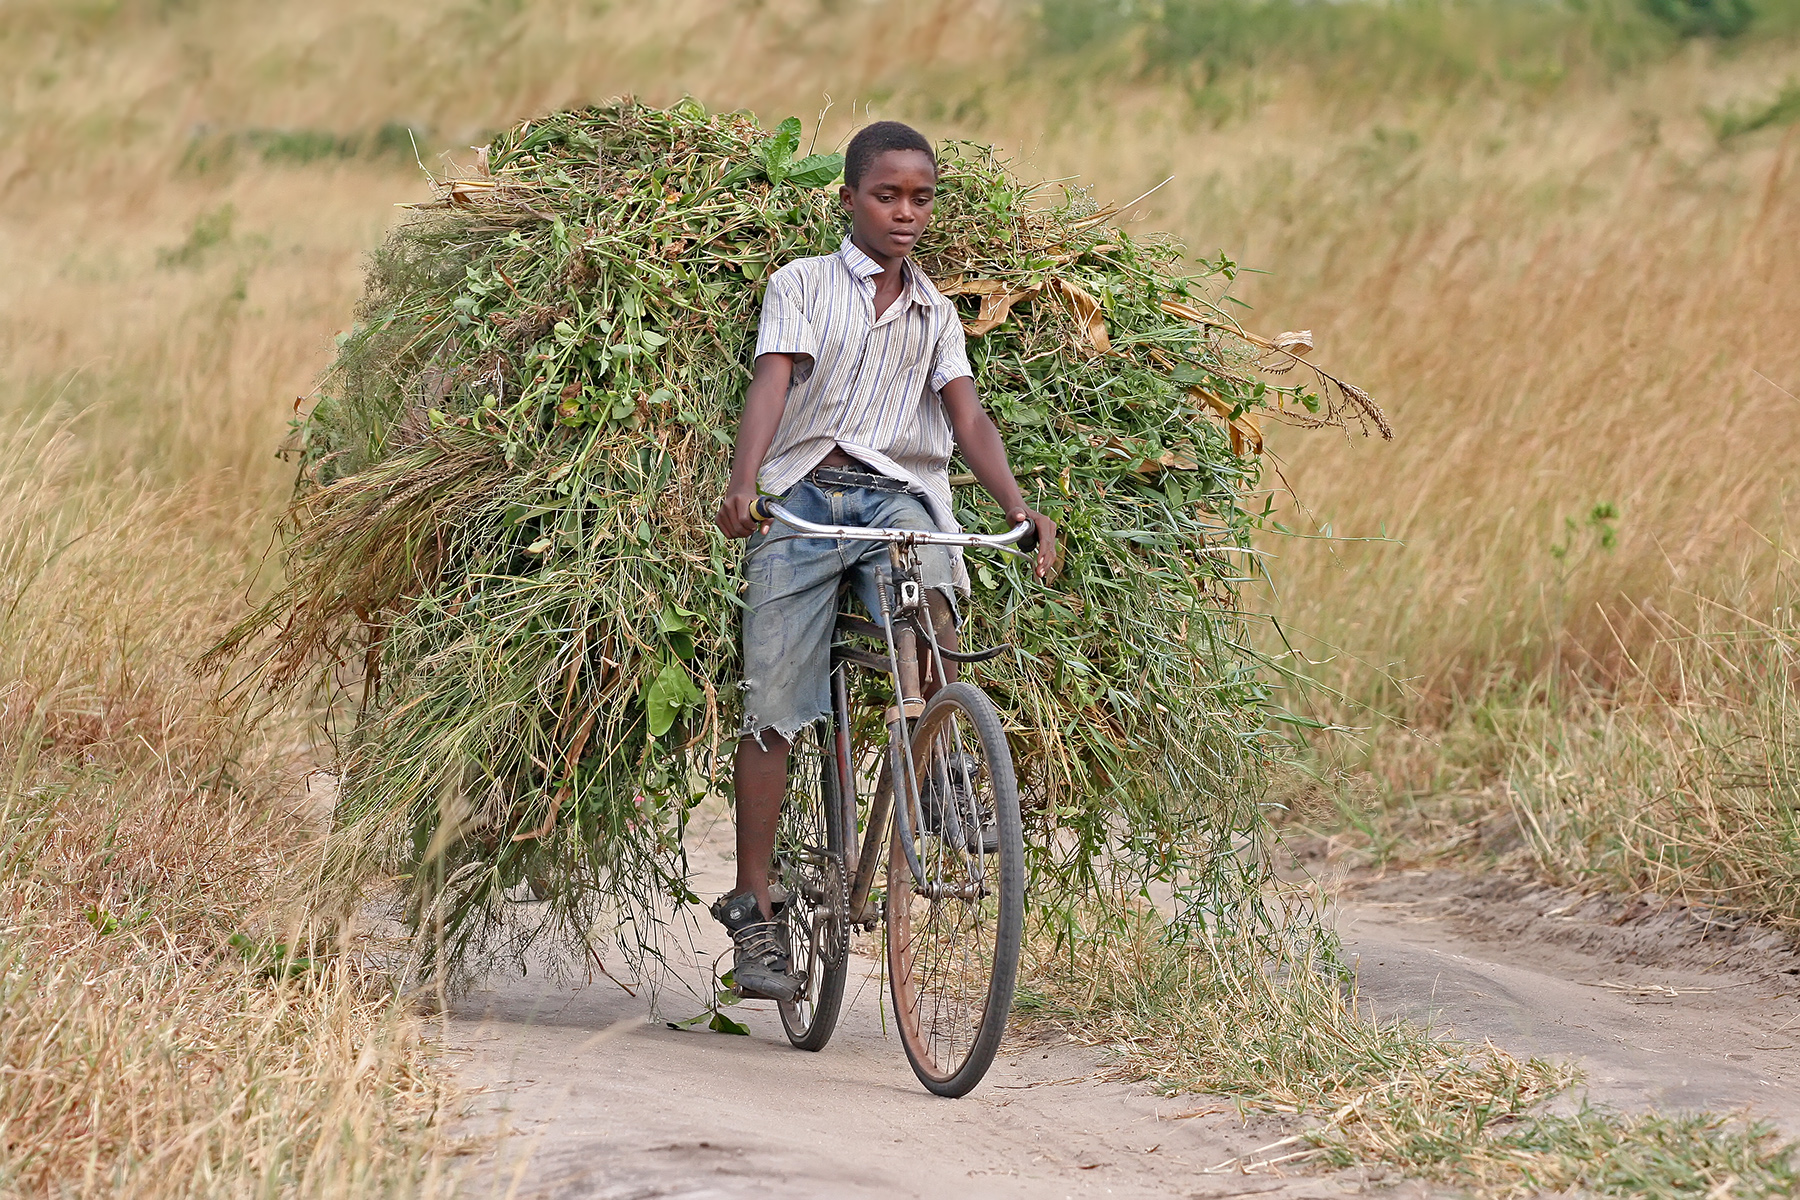 African boy transporting fodder